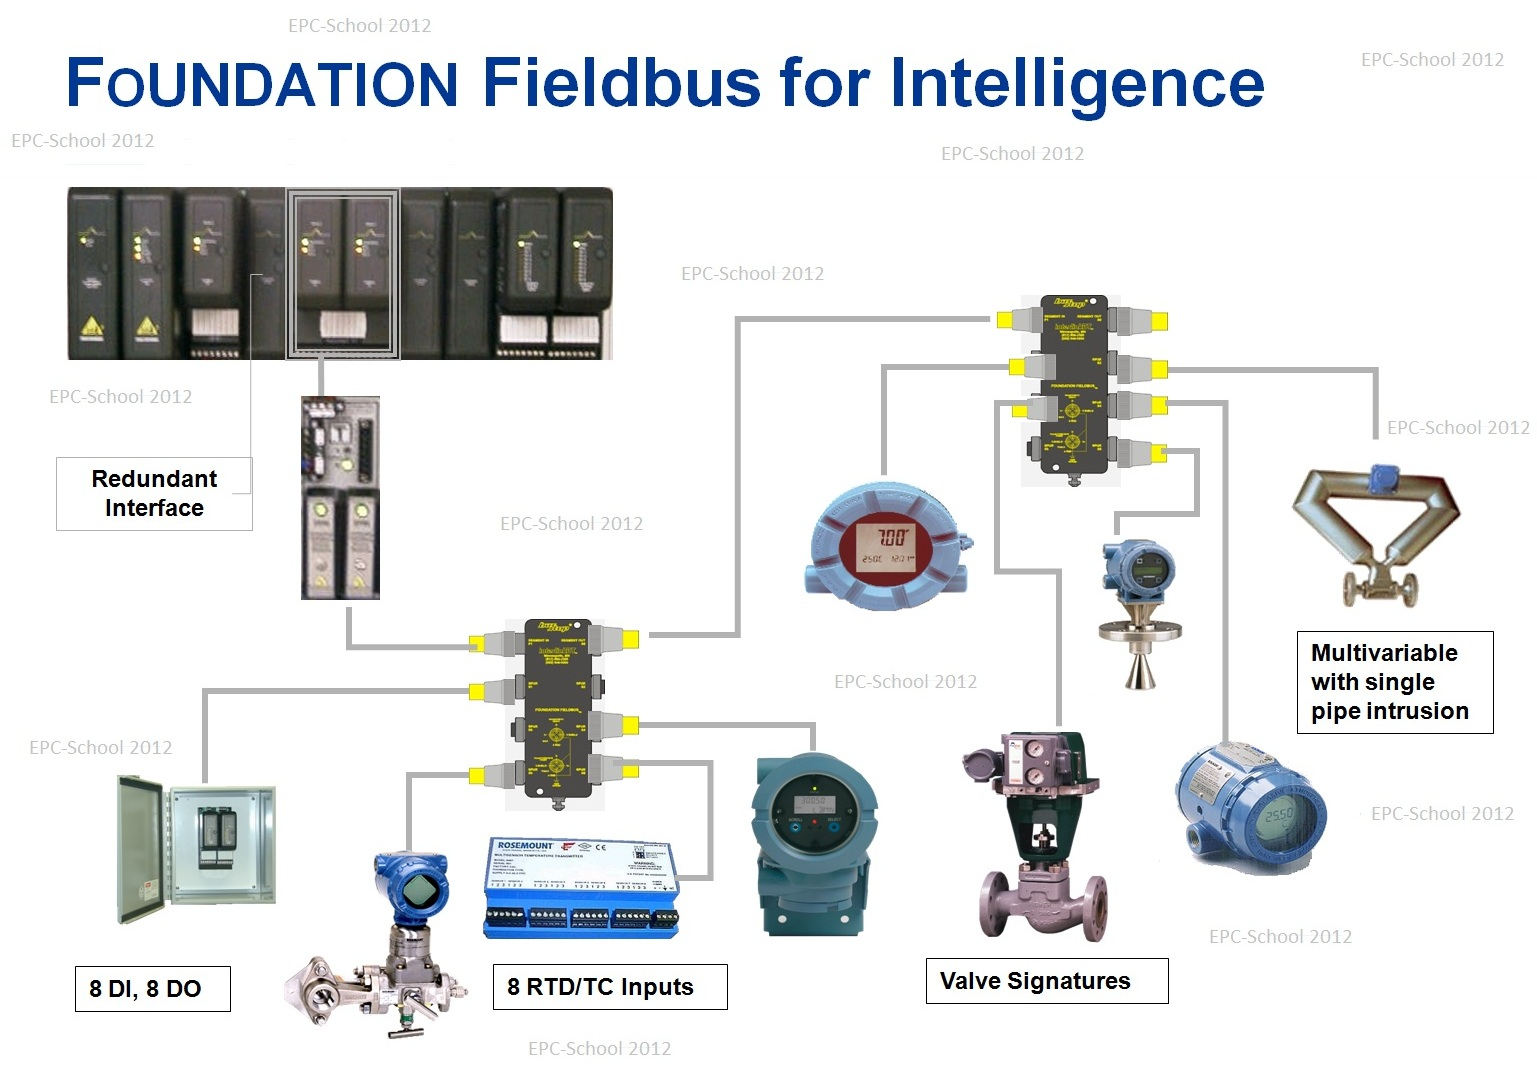 epc school foundation fieldbus concepts 3 rh epc school blogspot com foundation fieldbus wiring in intools foundation fieldbus wiring setup